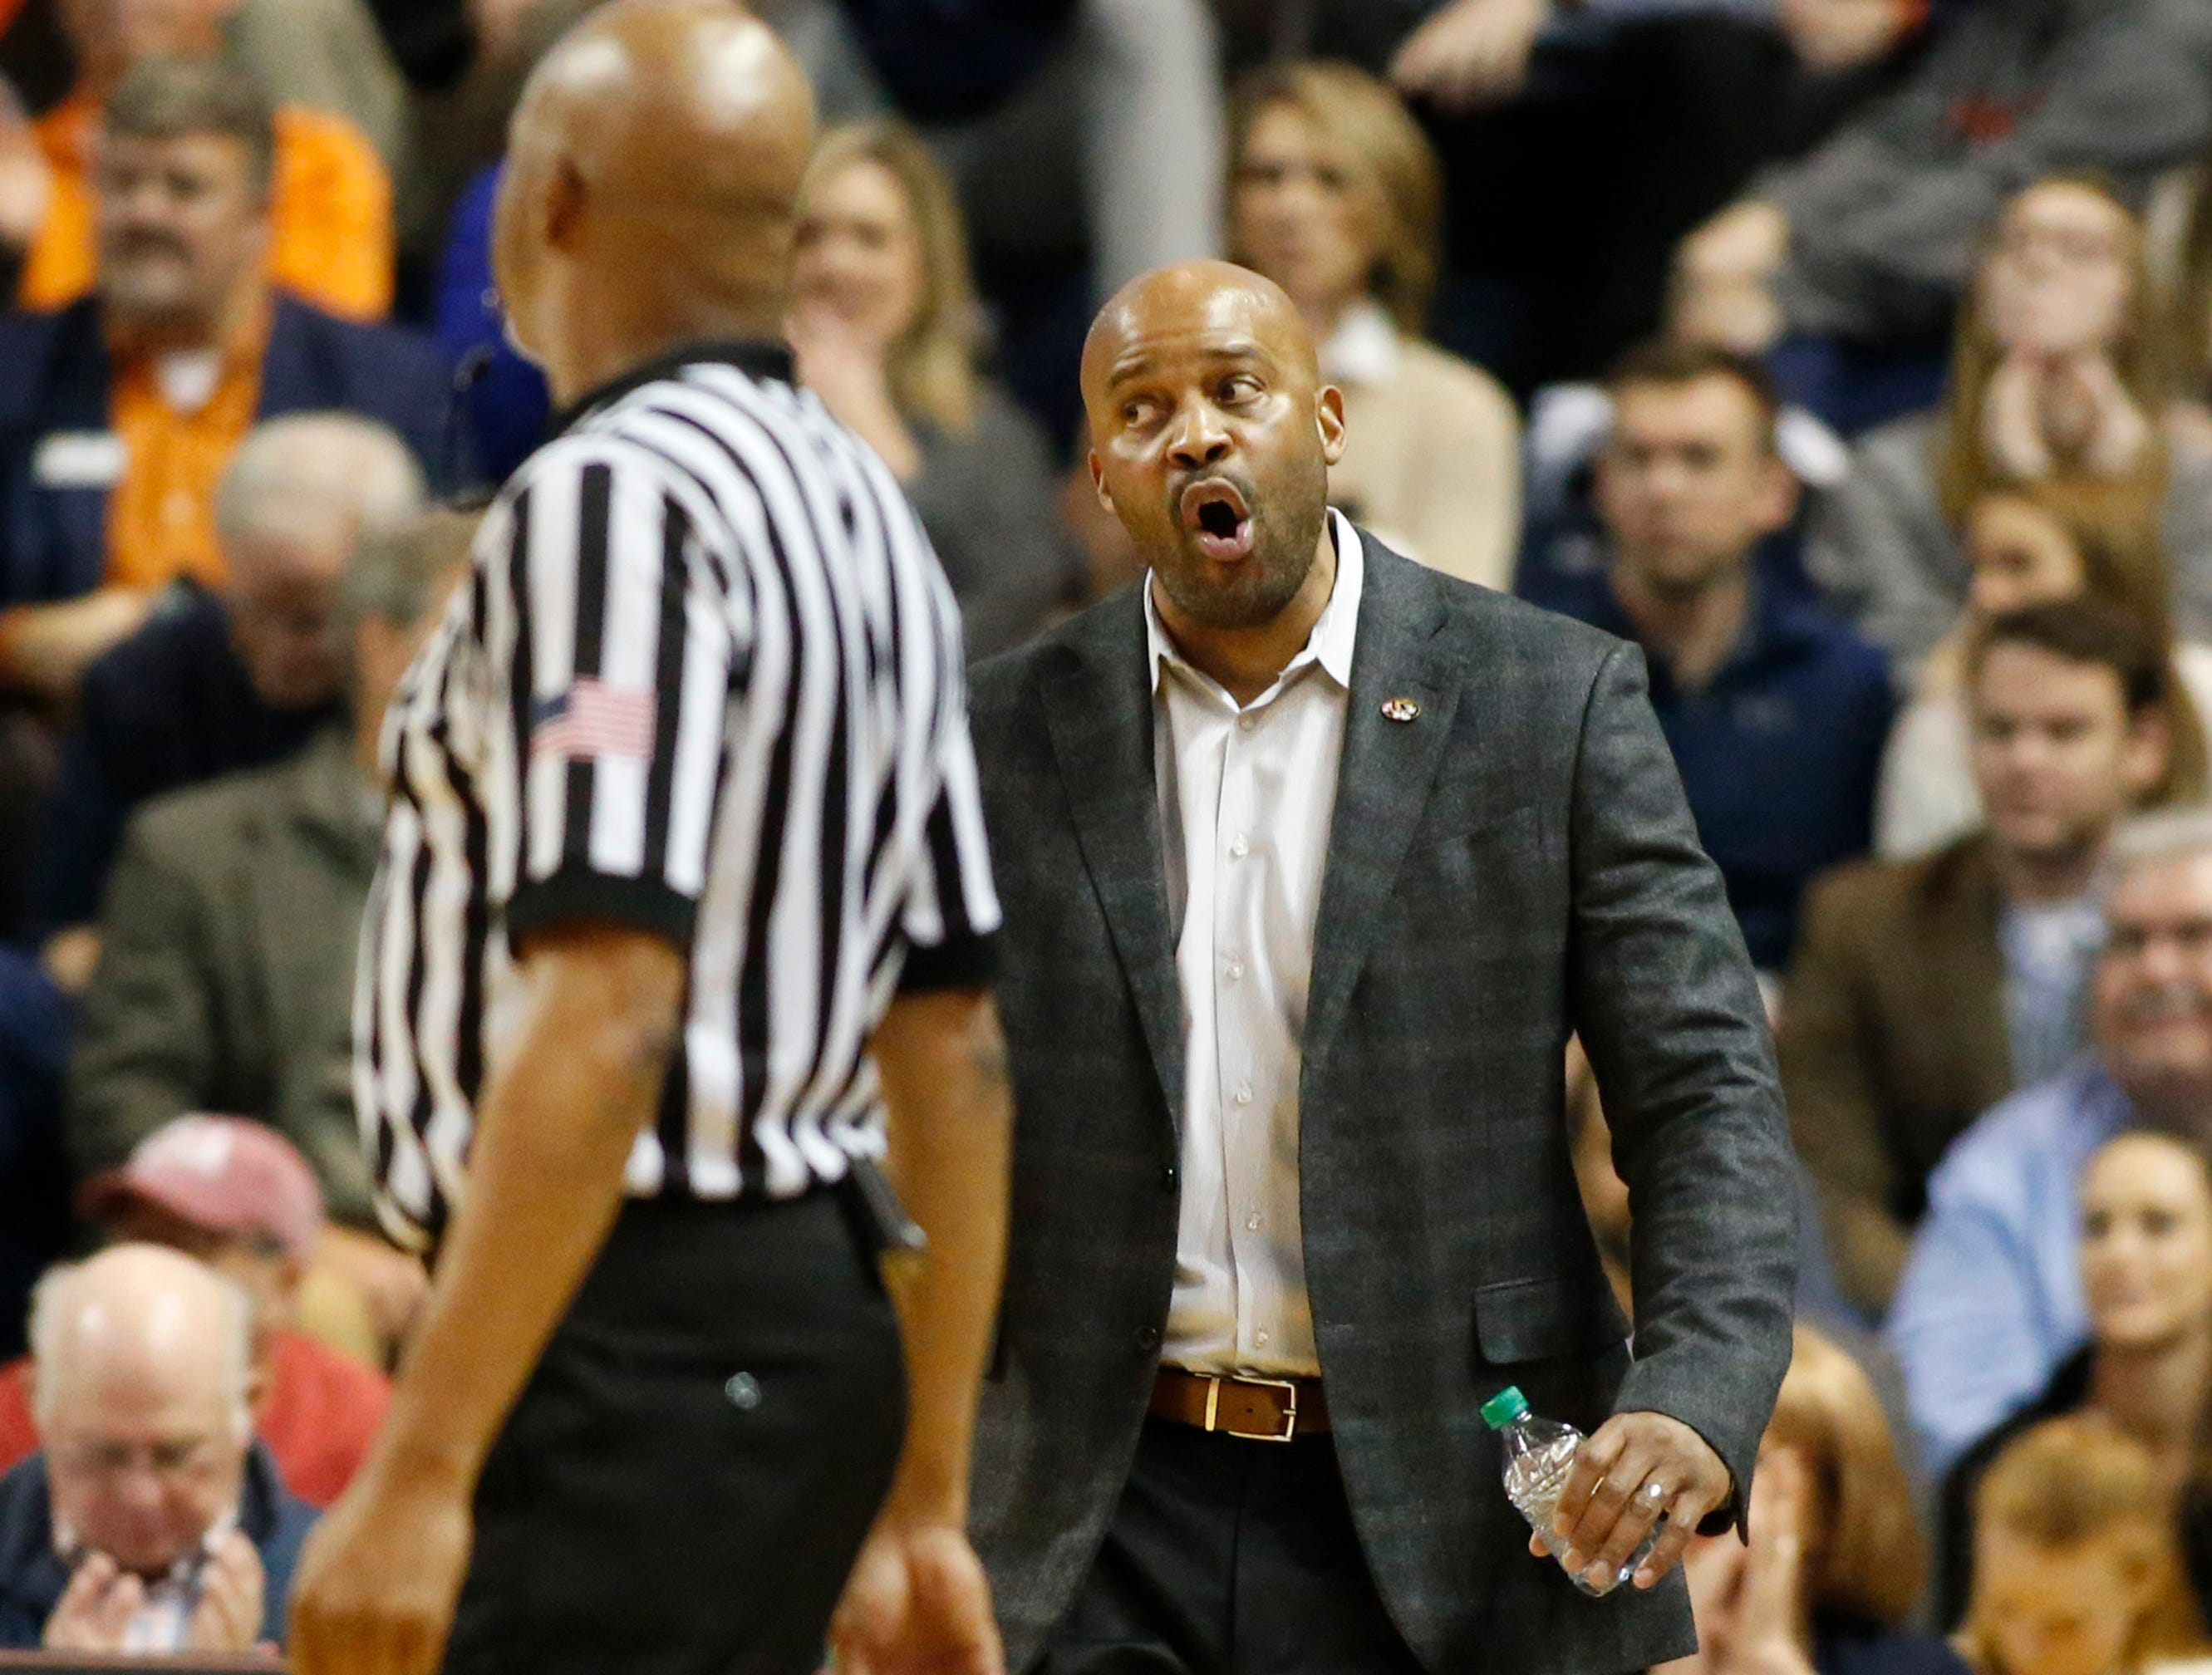 Jan 30, 2019; Auburn, AL, USA; Missouri Tigers head coach Cuonzo Martin reacts after a call during the first half against the Auburn Tigers at Auburn Arena. Mandatory Credit: John Reed-USA TODAY Sports